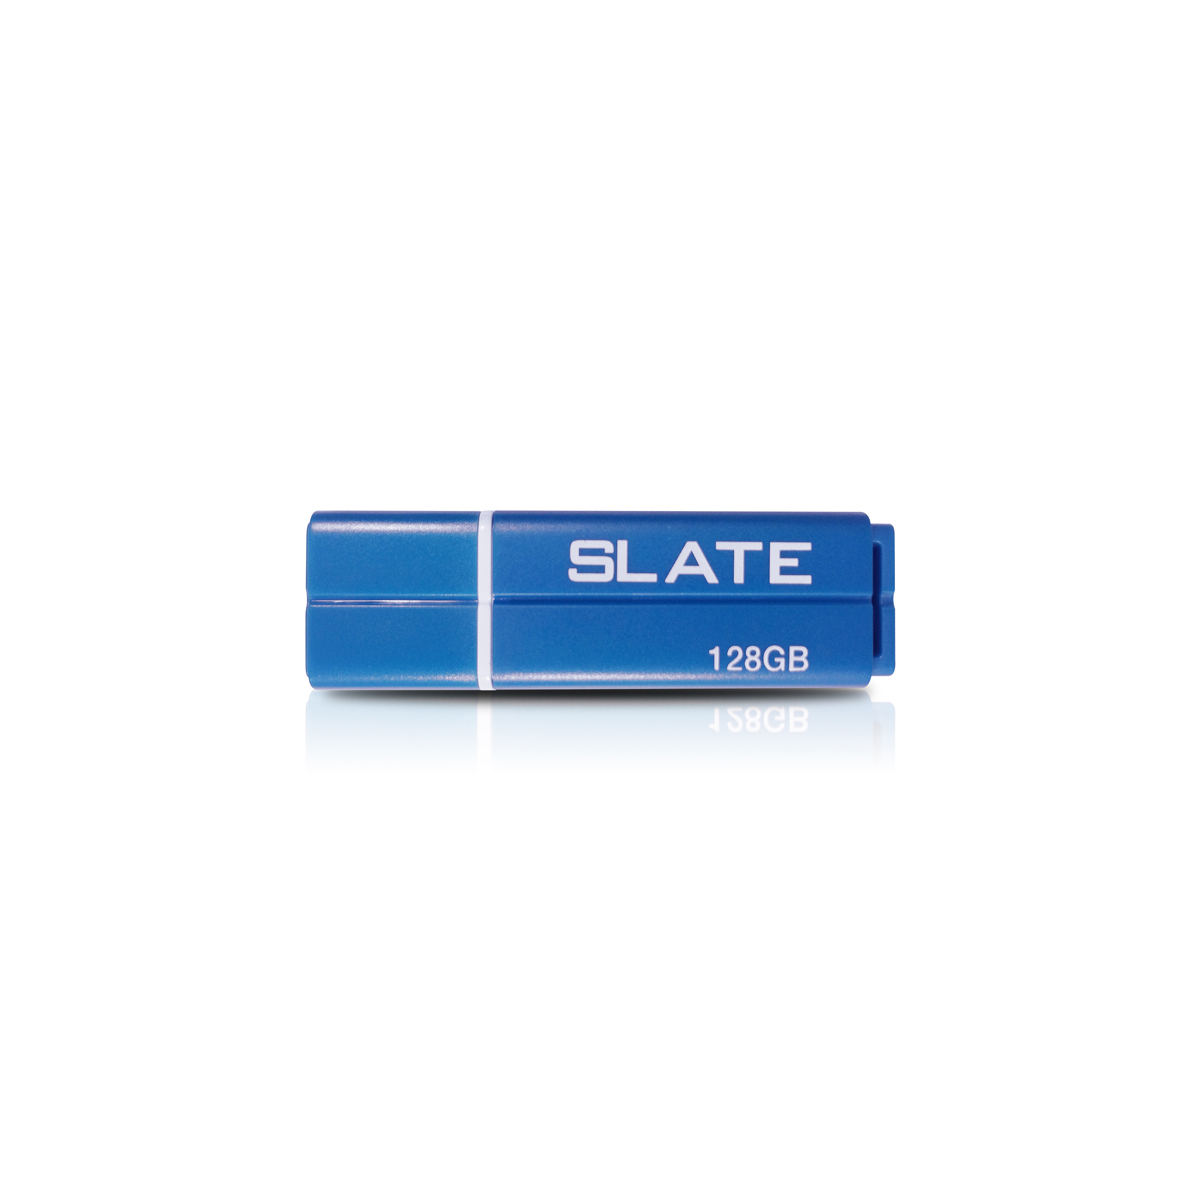 Flash disk Patriot Slate 128GB USB 3.0 Blue